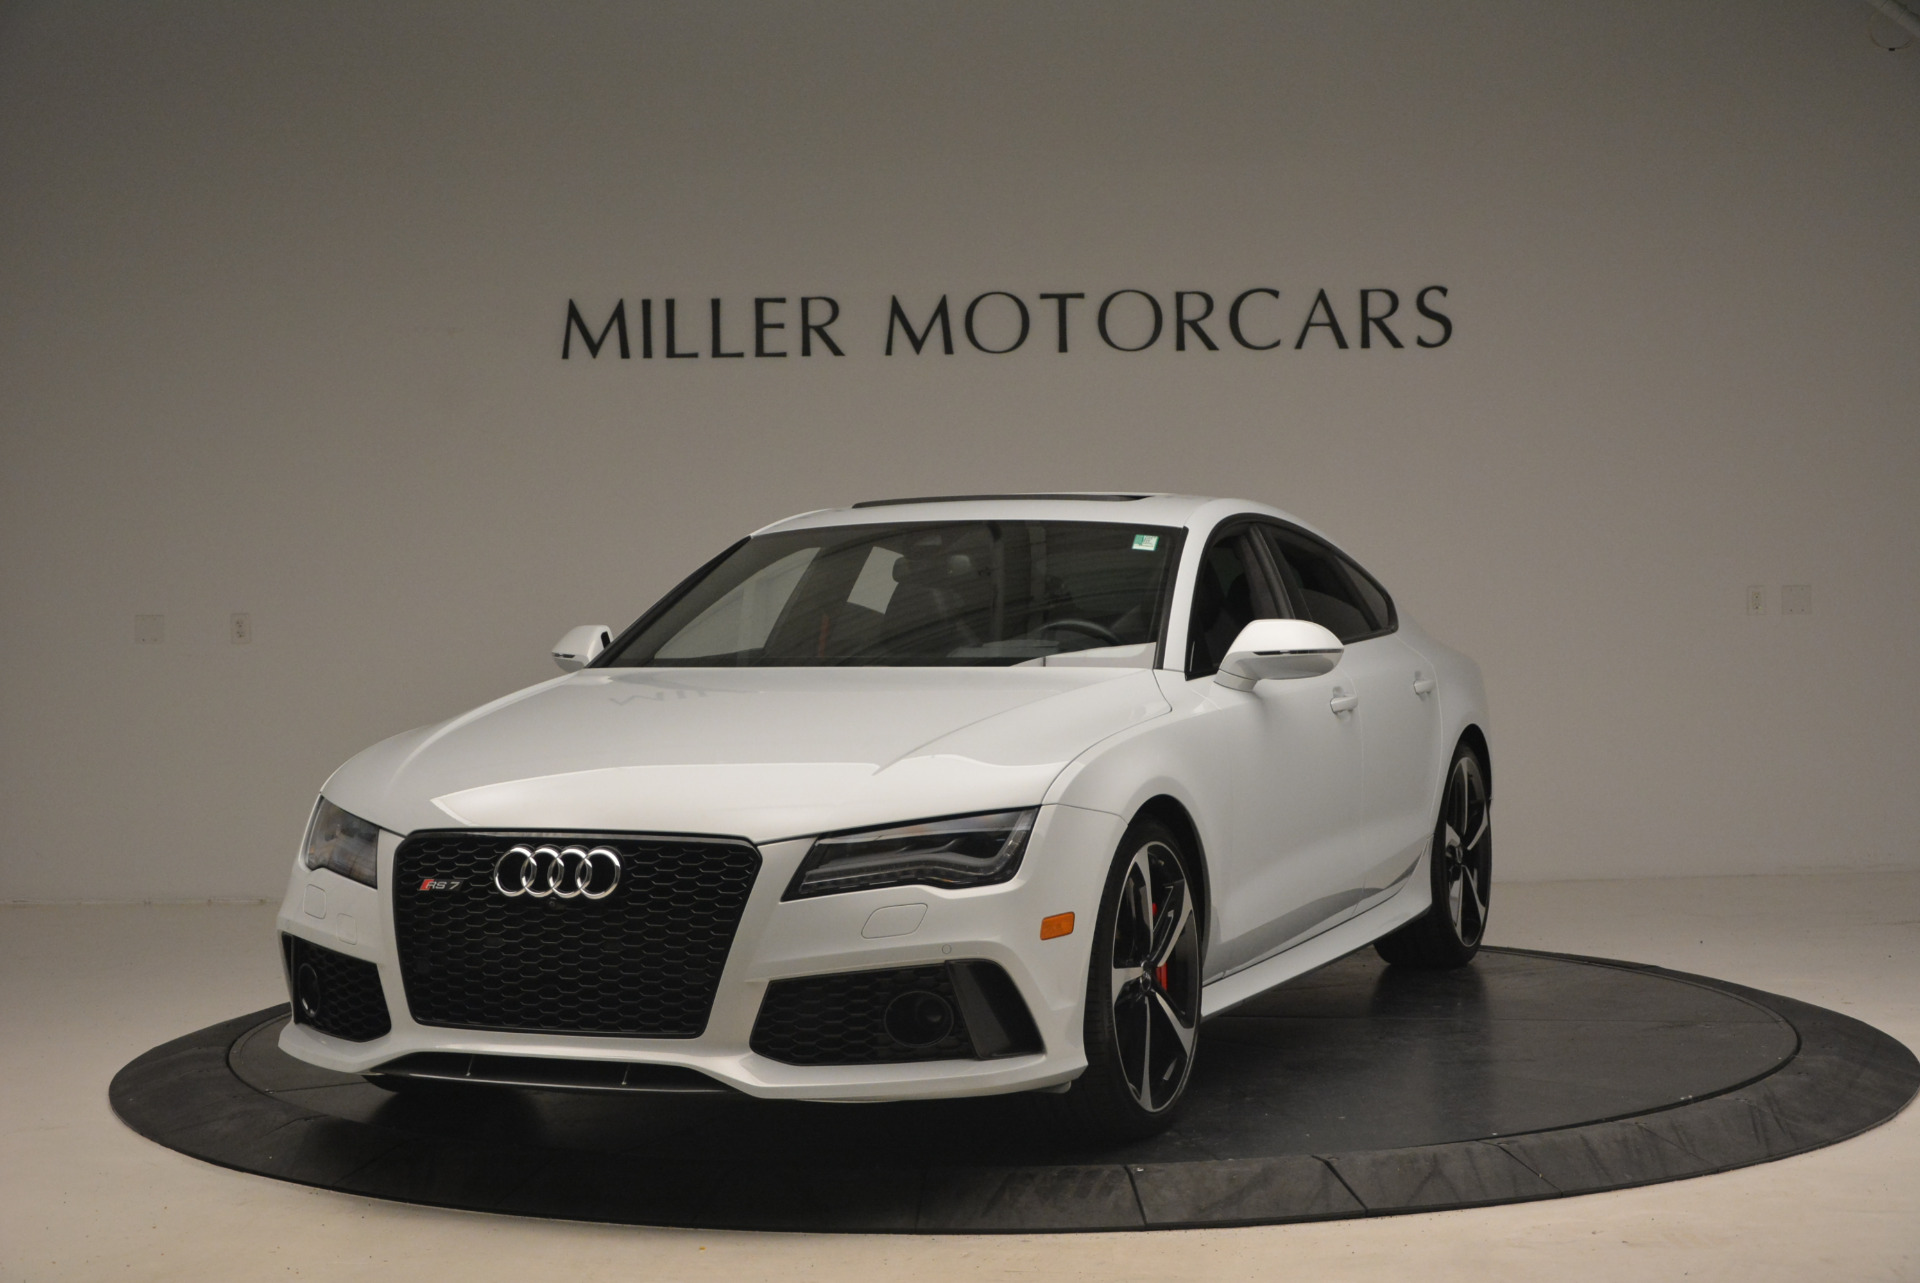 Used 2014 Audi RS 7 4.0T quattro Prestige for sale Sold at Aston Martin of Greenwich in Greenwich CT 06830 1